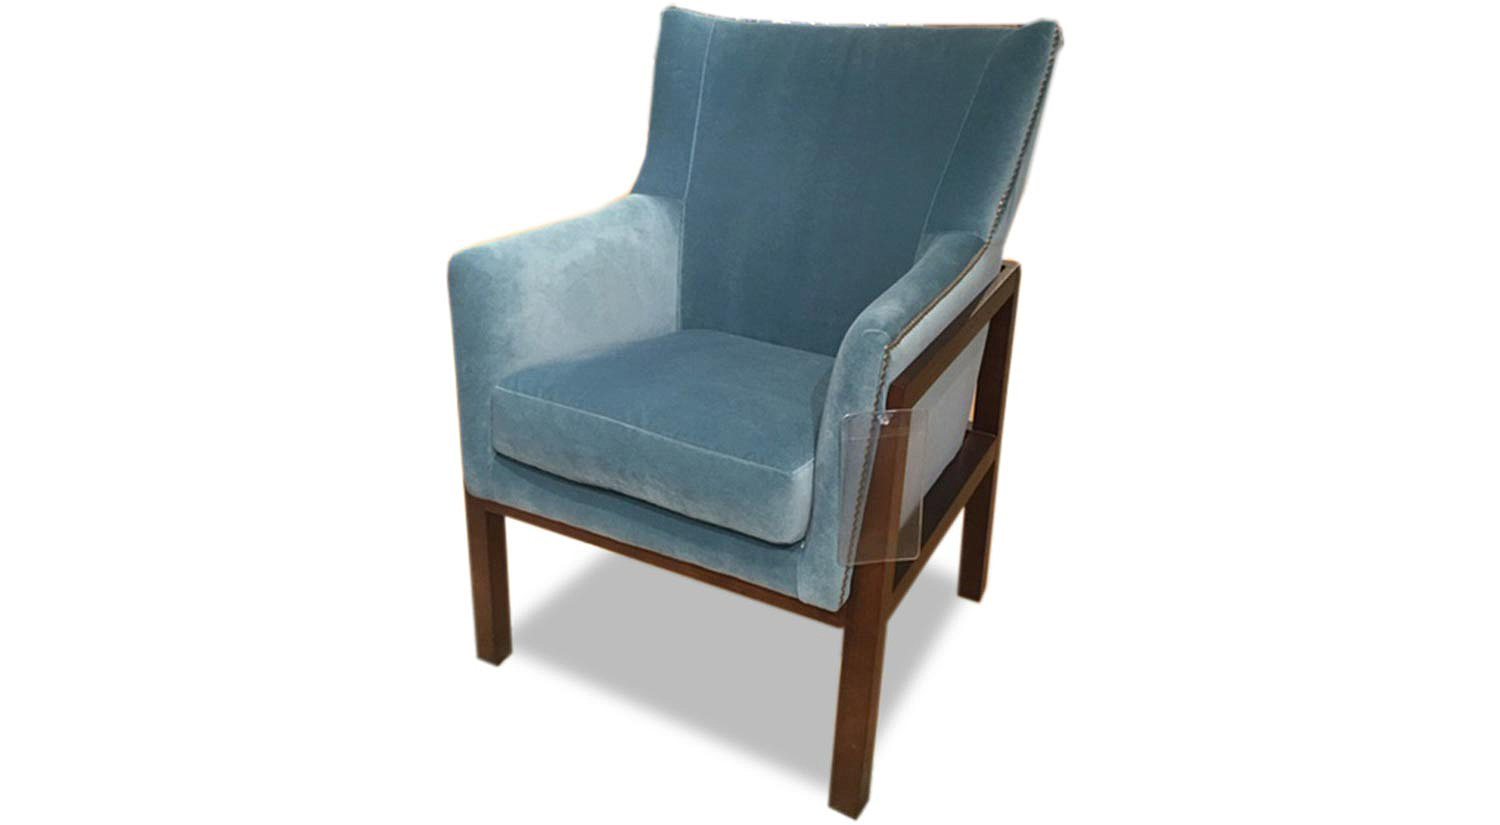 Rolly Chair in Blue